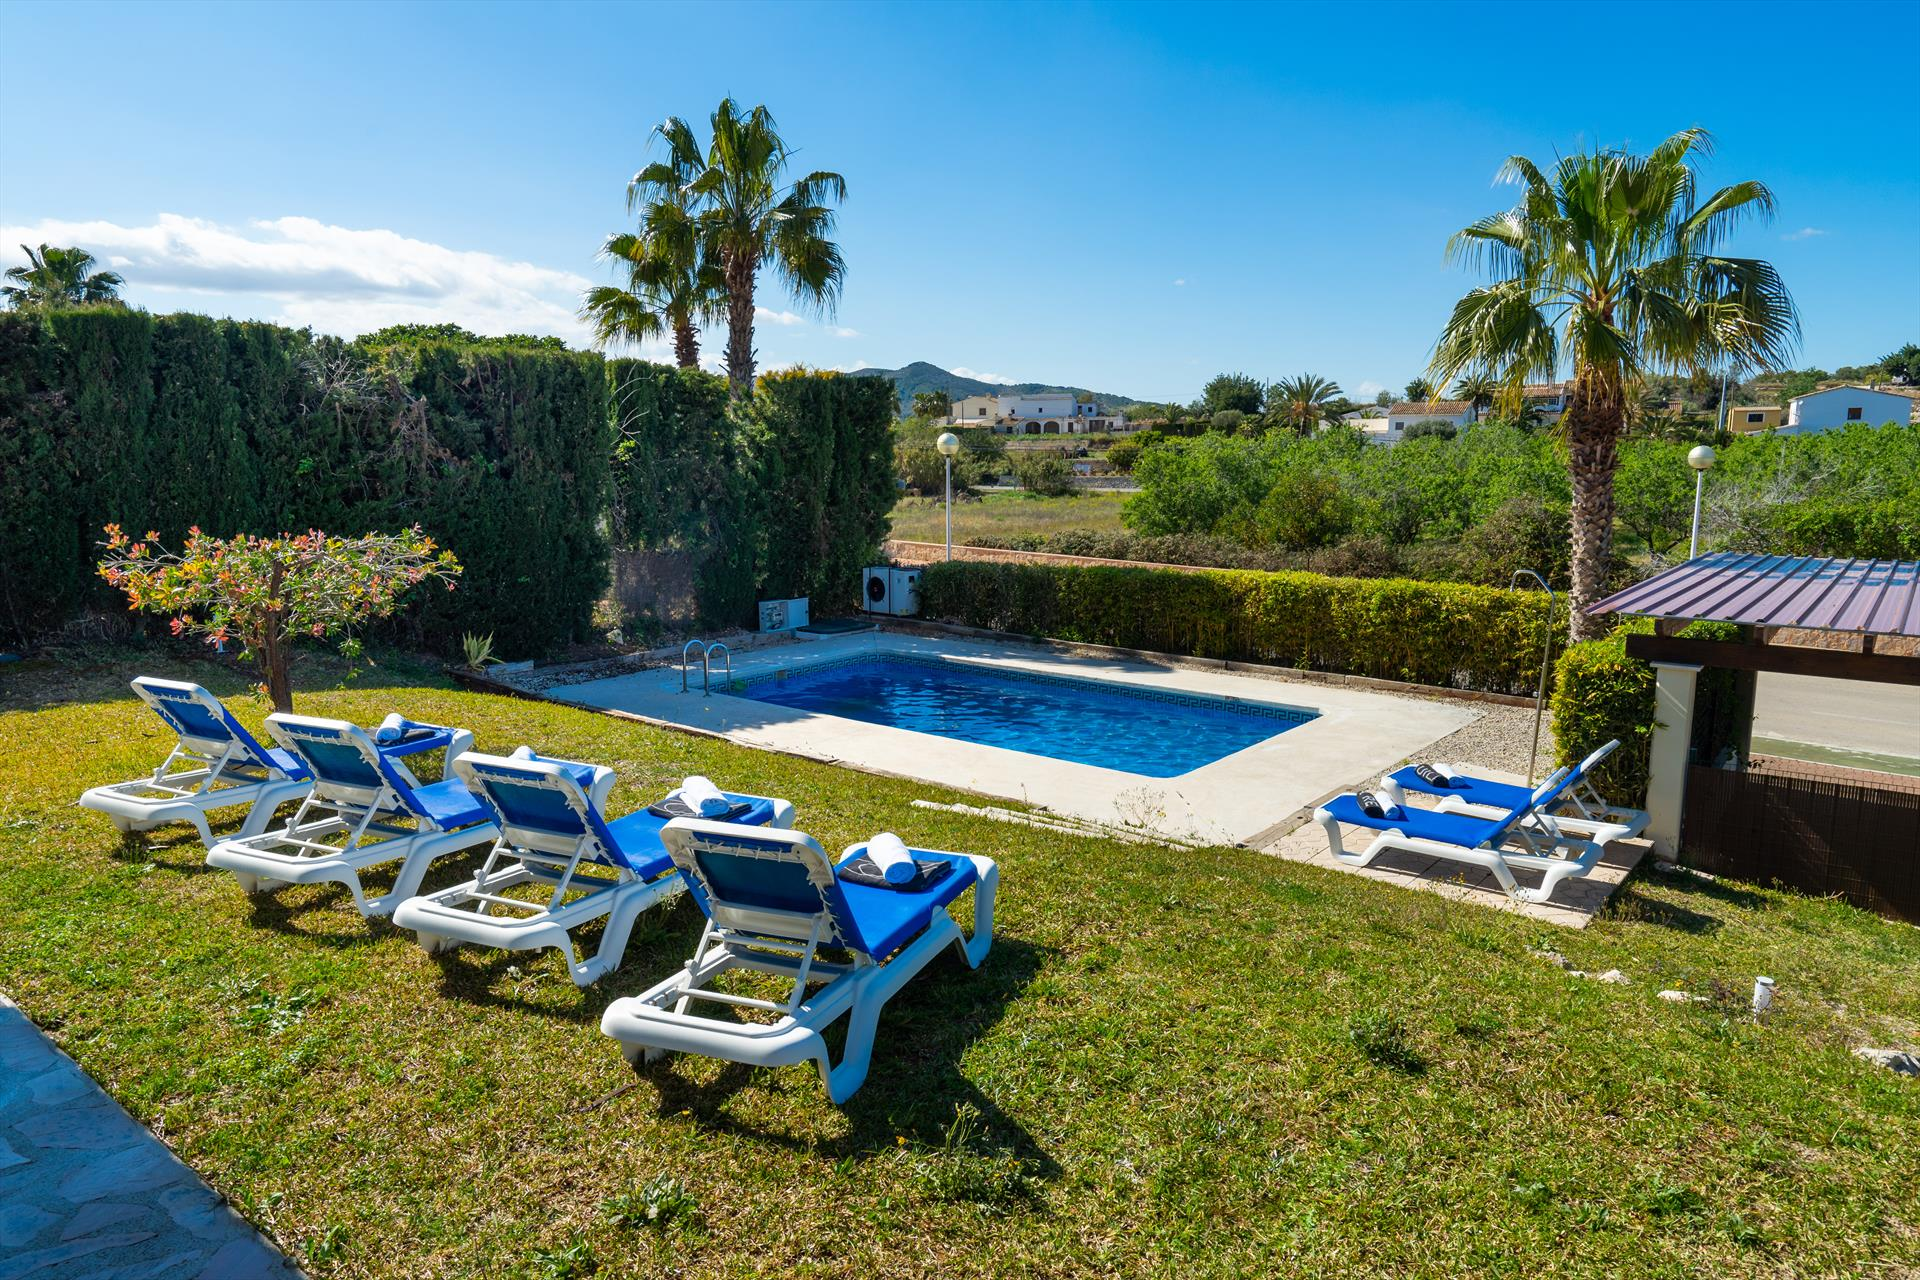 Calmita 4 pax, Modern and comfortable holiday home  with private pool in Javea, on the Costa Blanca, Spain for 4 persons...